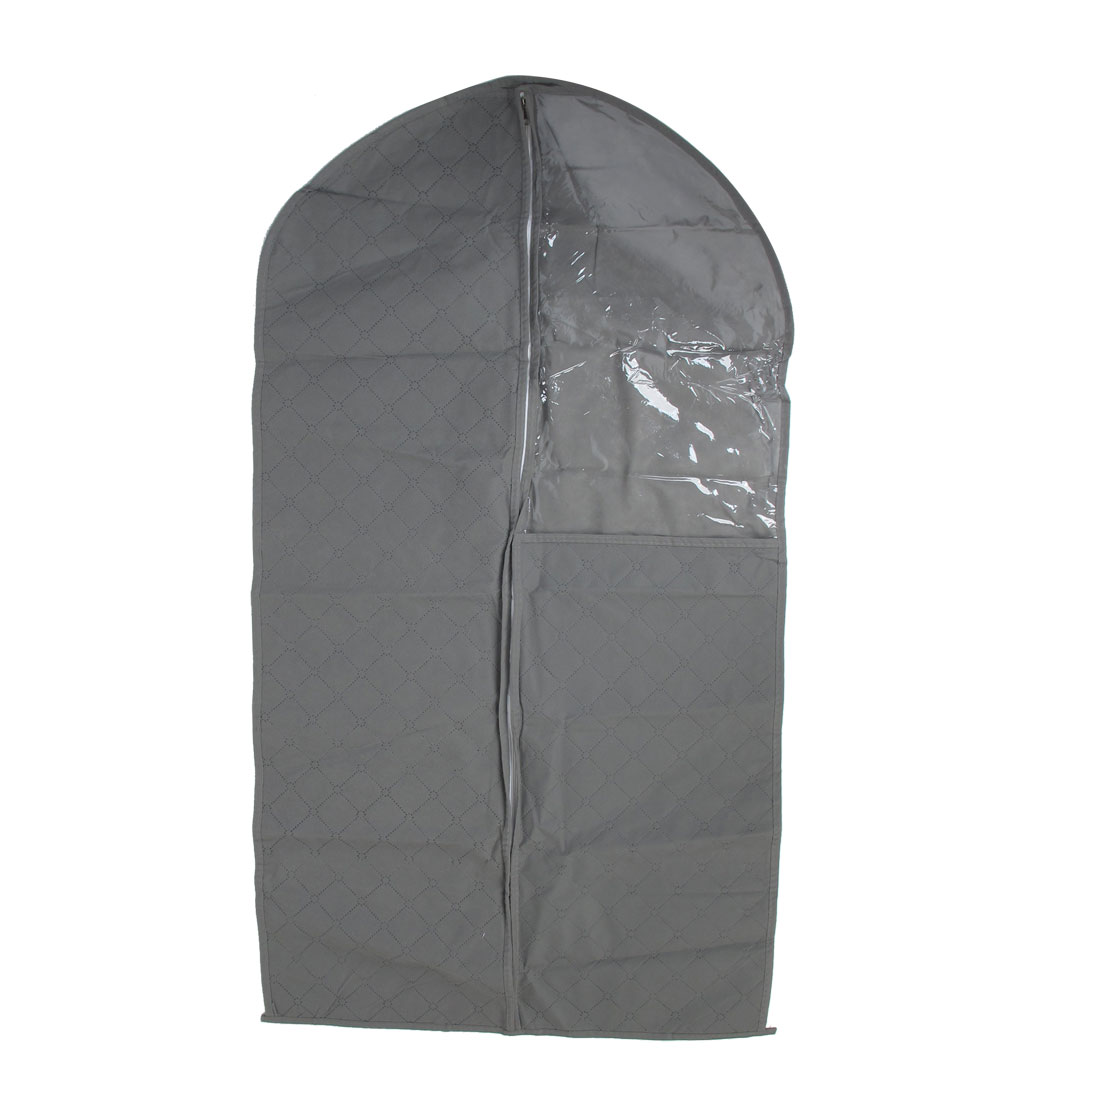 "Travel Zip Coat Suit Dress Garment Storage Dustproof Bag 43"" Length"